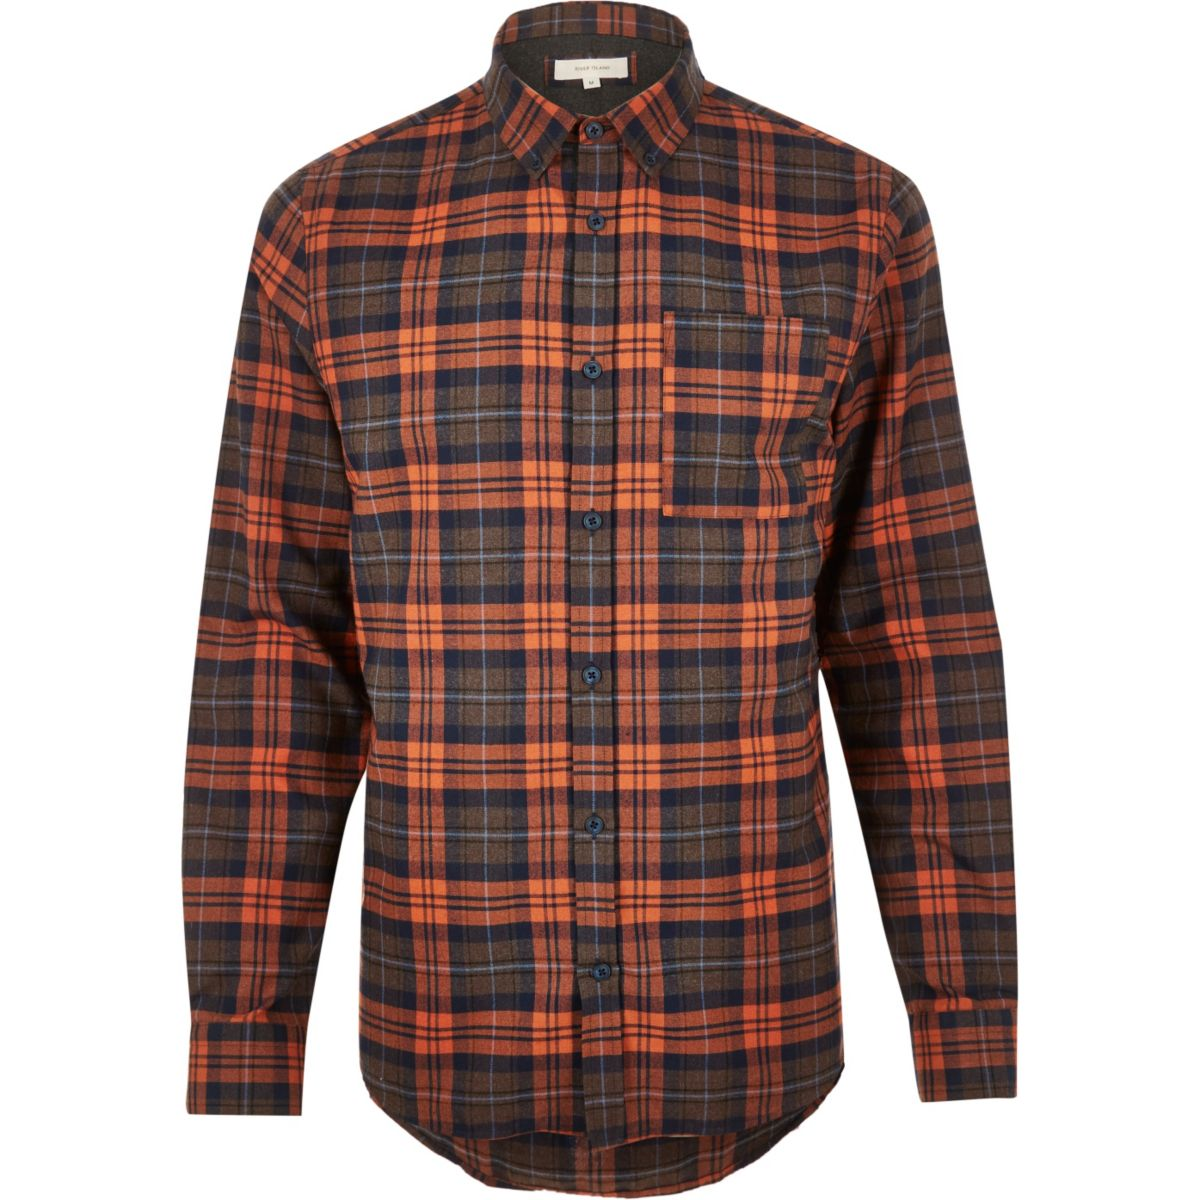 Orange casual check shirt